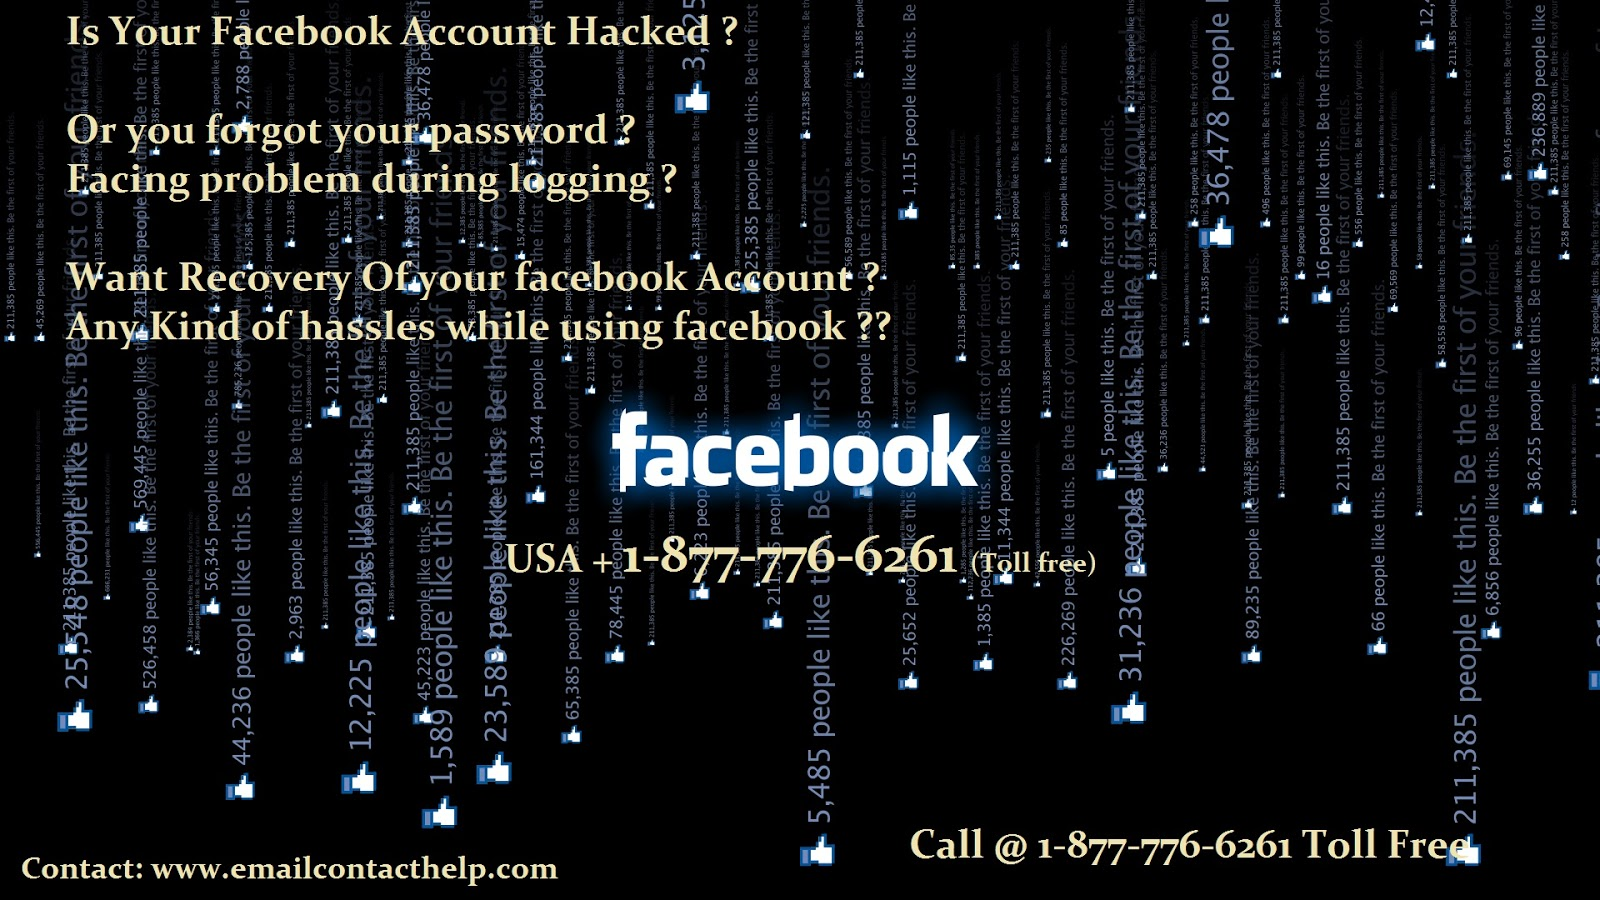 Facebook Technical 1-877-776-6261 Support Number USA